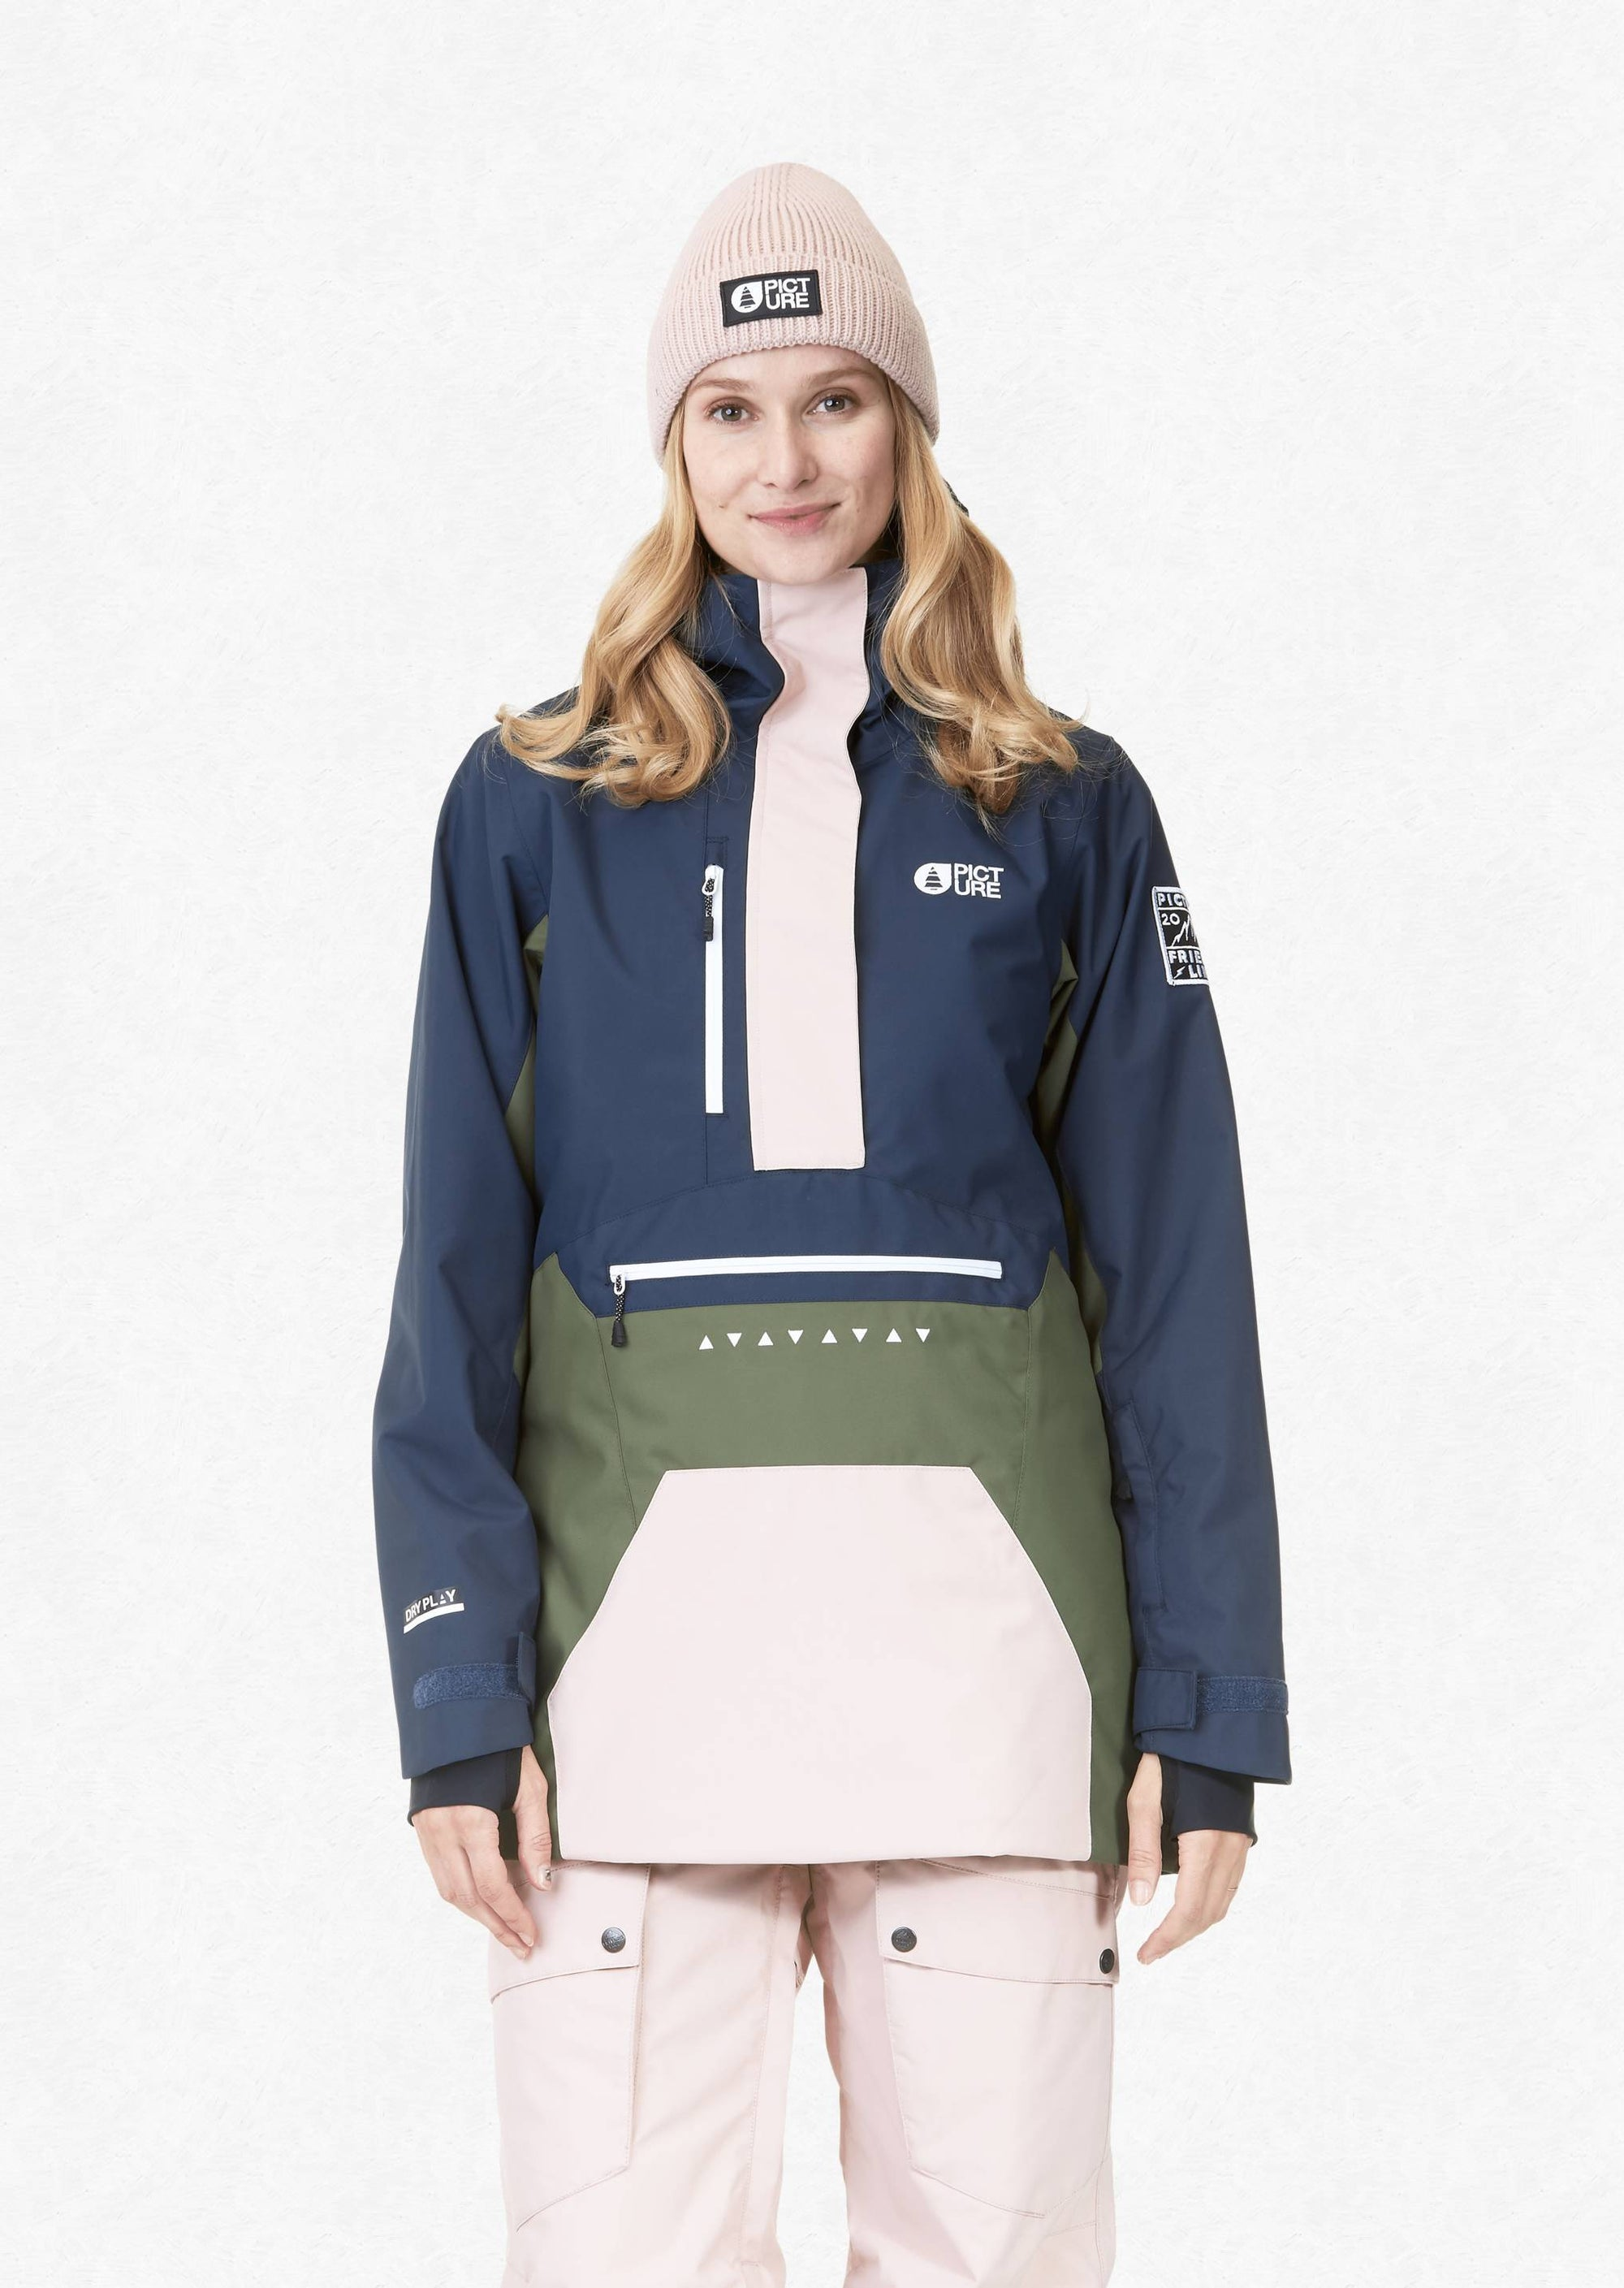 Picture Organic - W's Season Jacket - Recycled Polyester - Weekendbee - sustainable sportswear